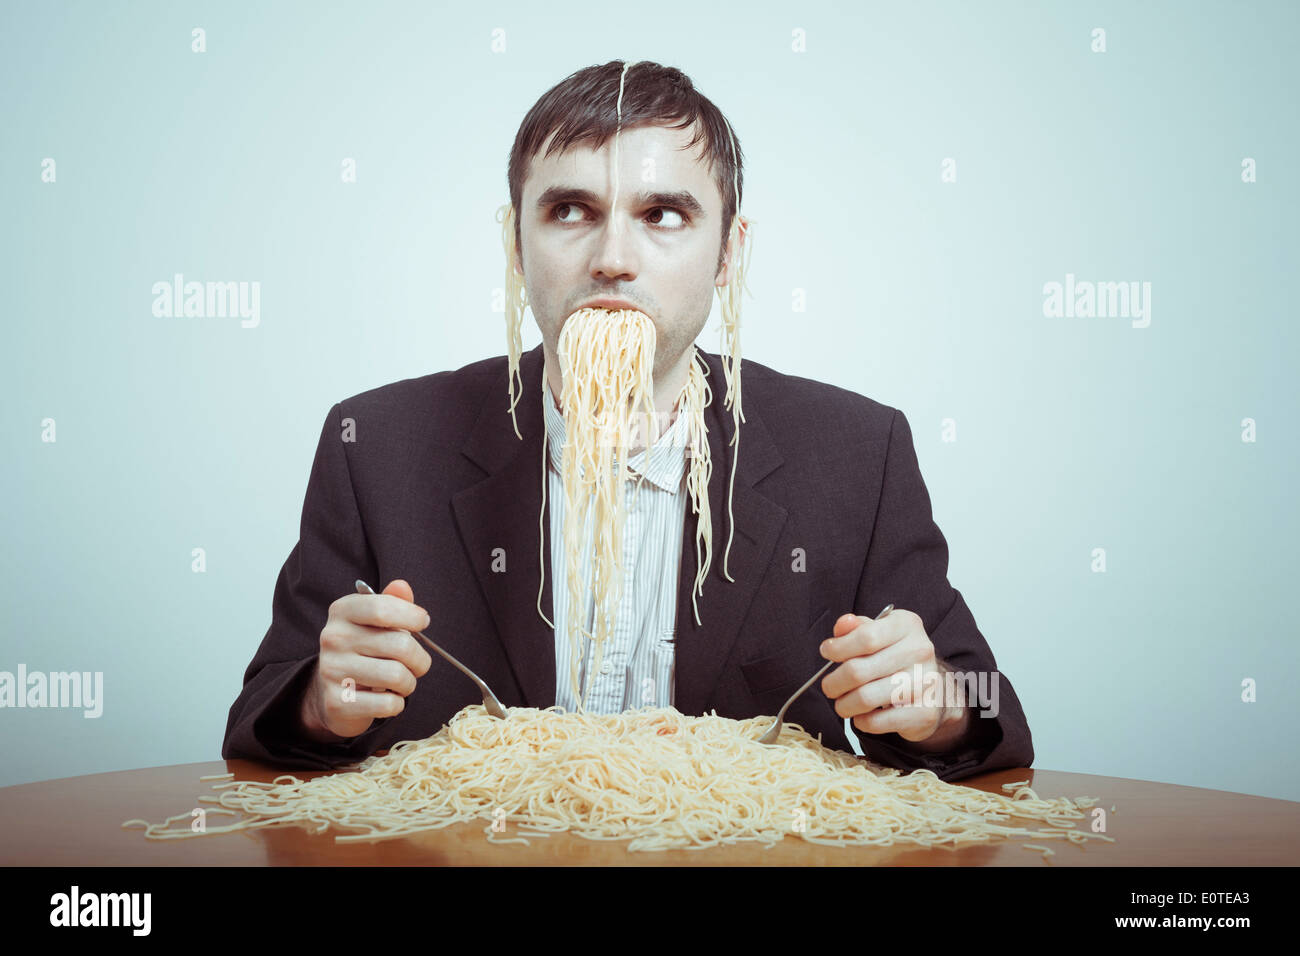 Overeating and consumerism concept. Silly nasty businessman eating pasta. Stock Photo